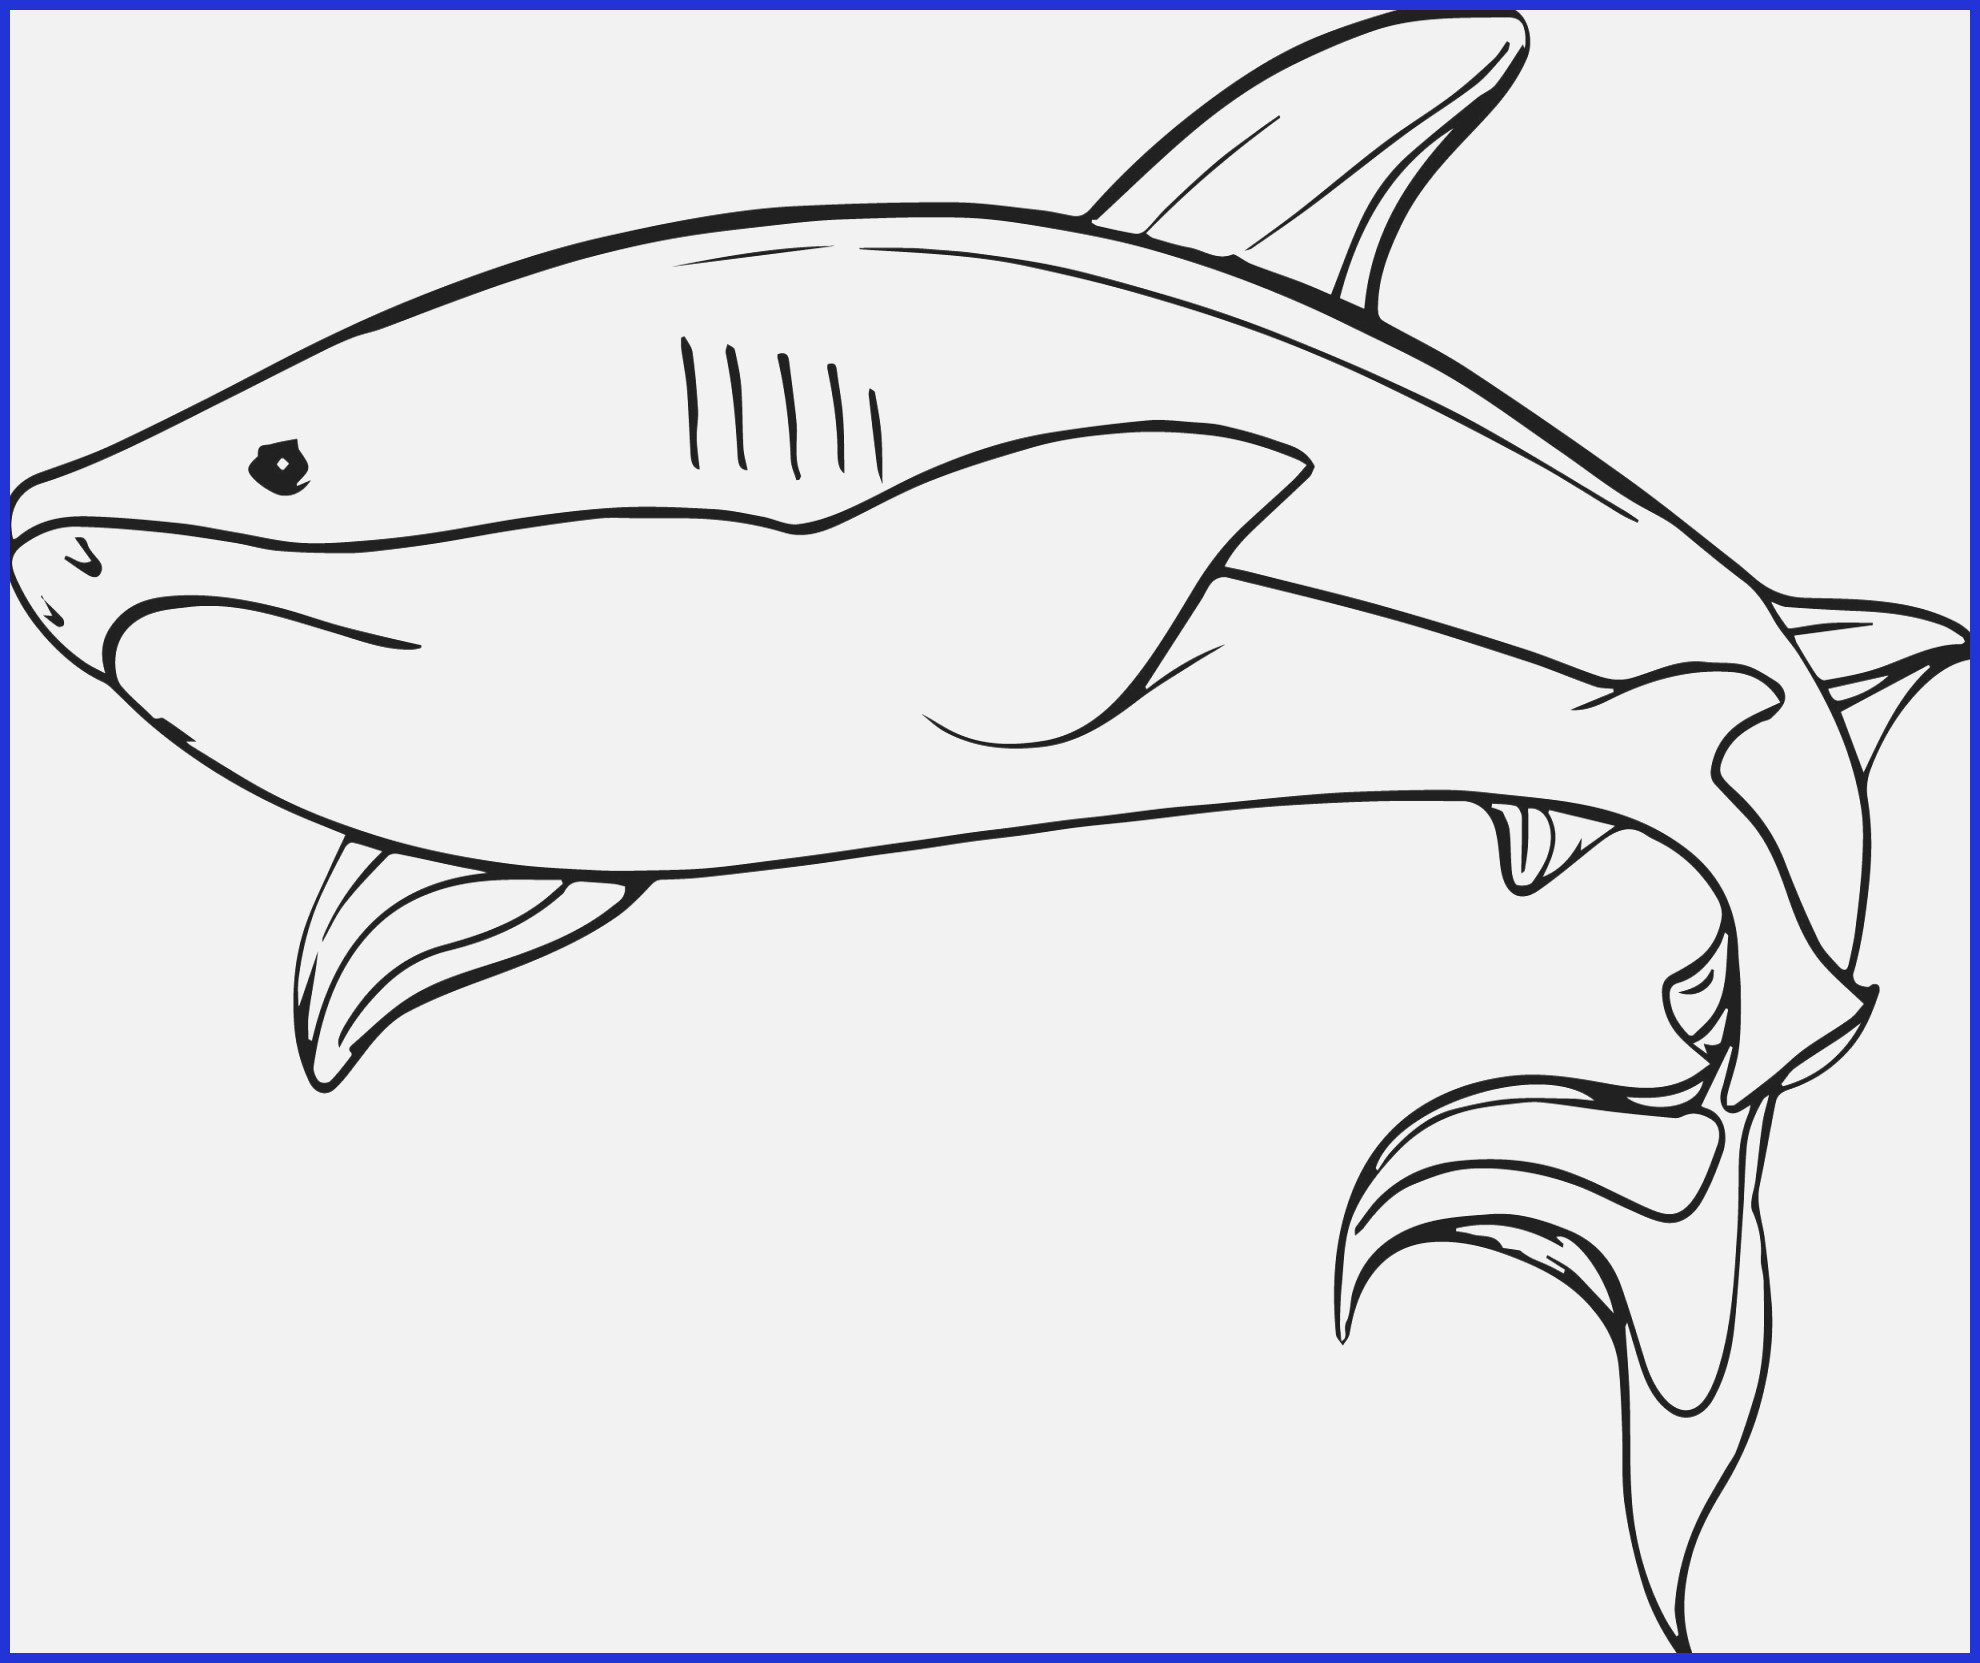 Great White Shark Coloring Pages Printable | Free Coloring ...